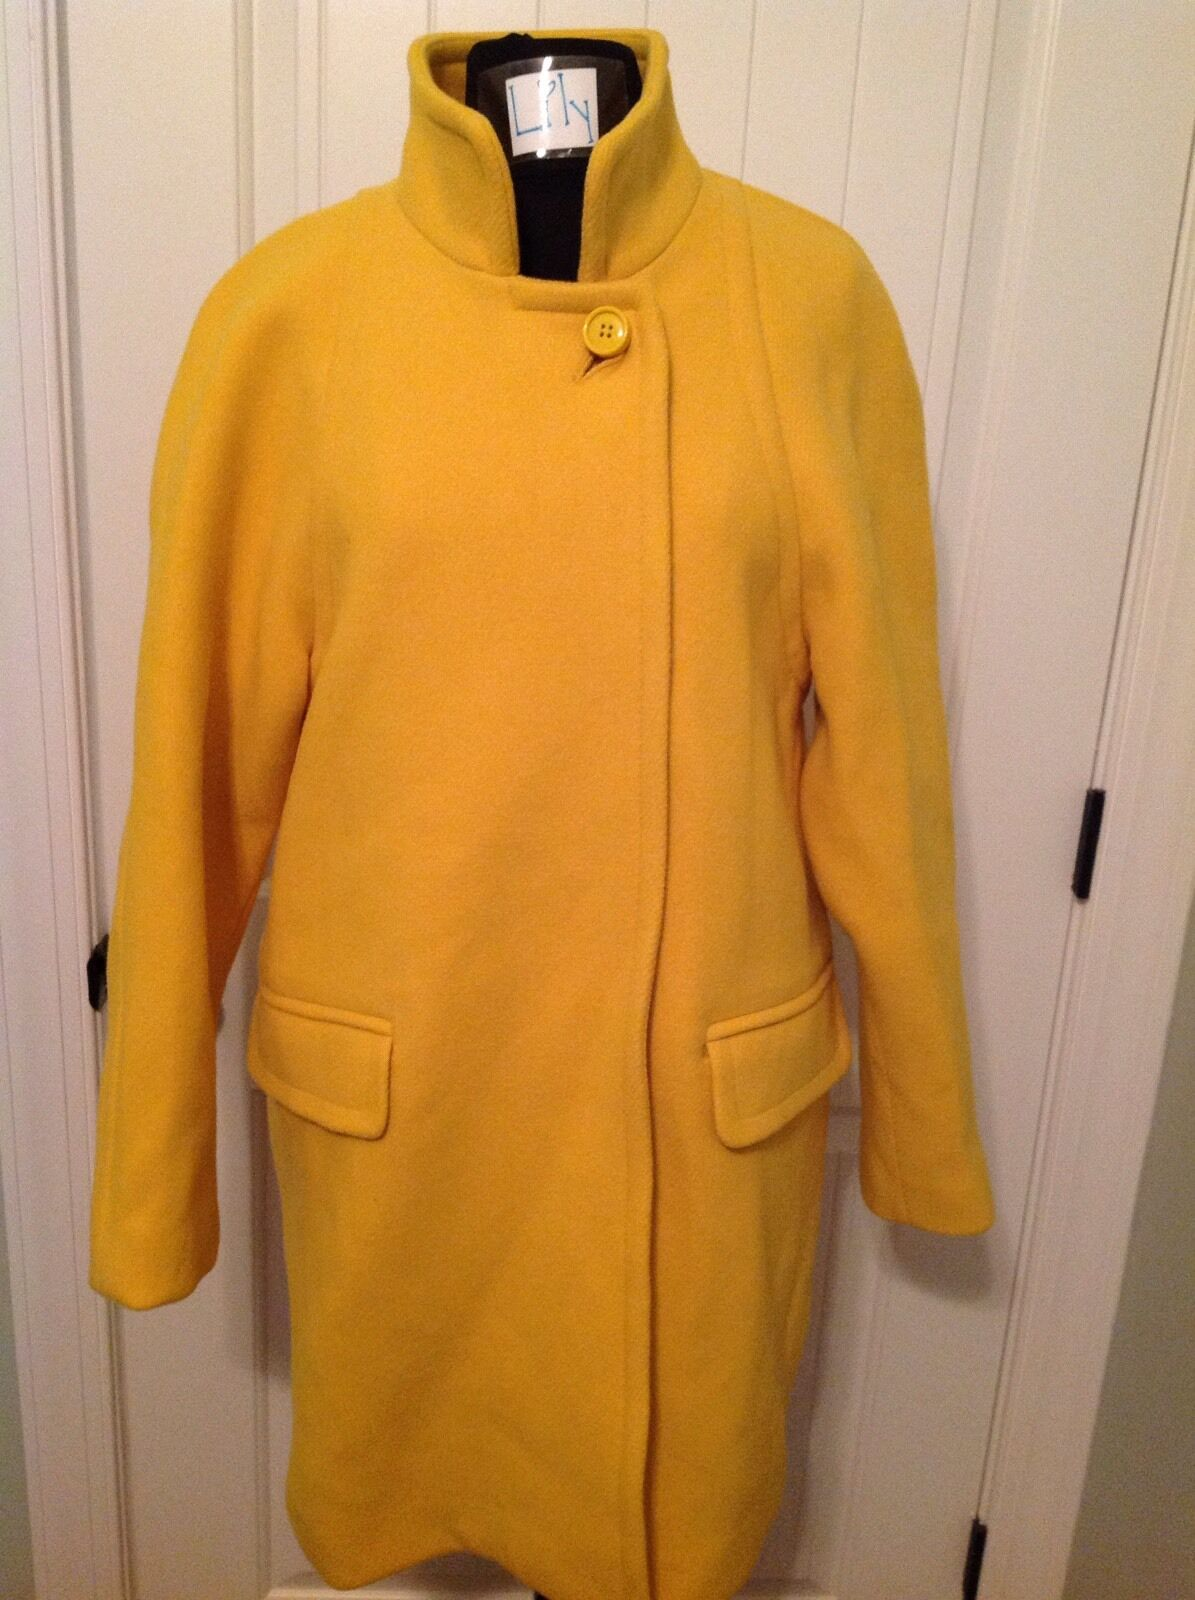 J.CREW STADIUM-CLOTH STANDING-COLLAR COAT - SIZE 8 - SOLD OUT COLOR